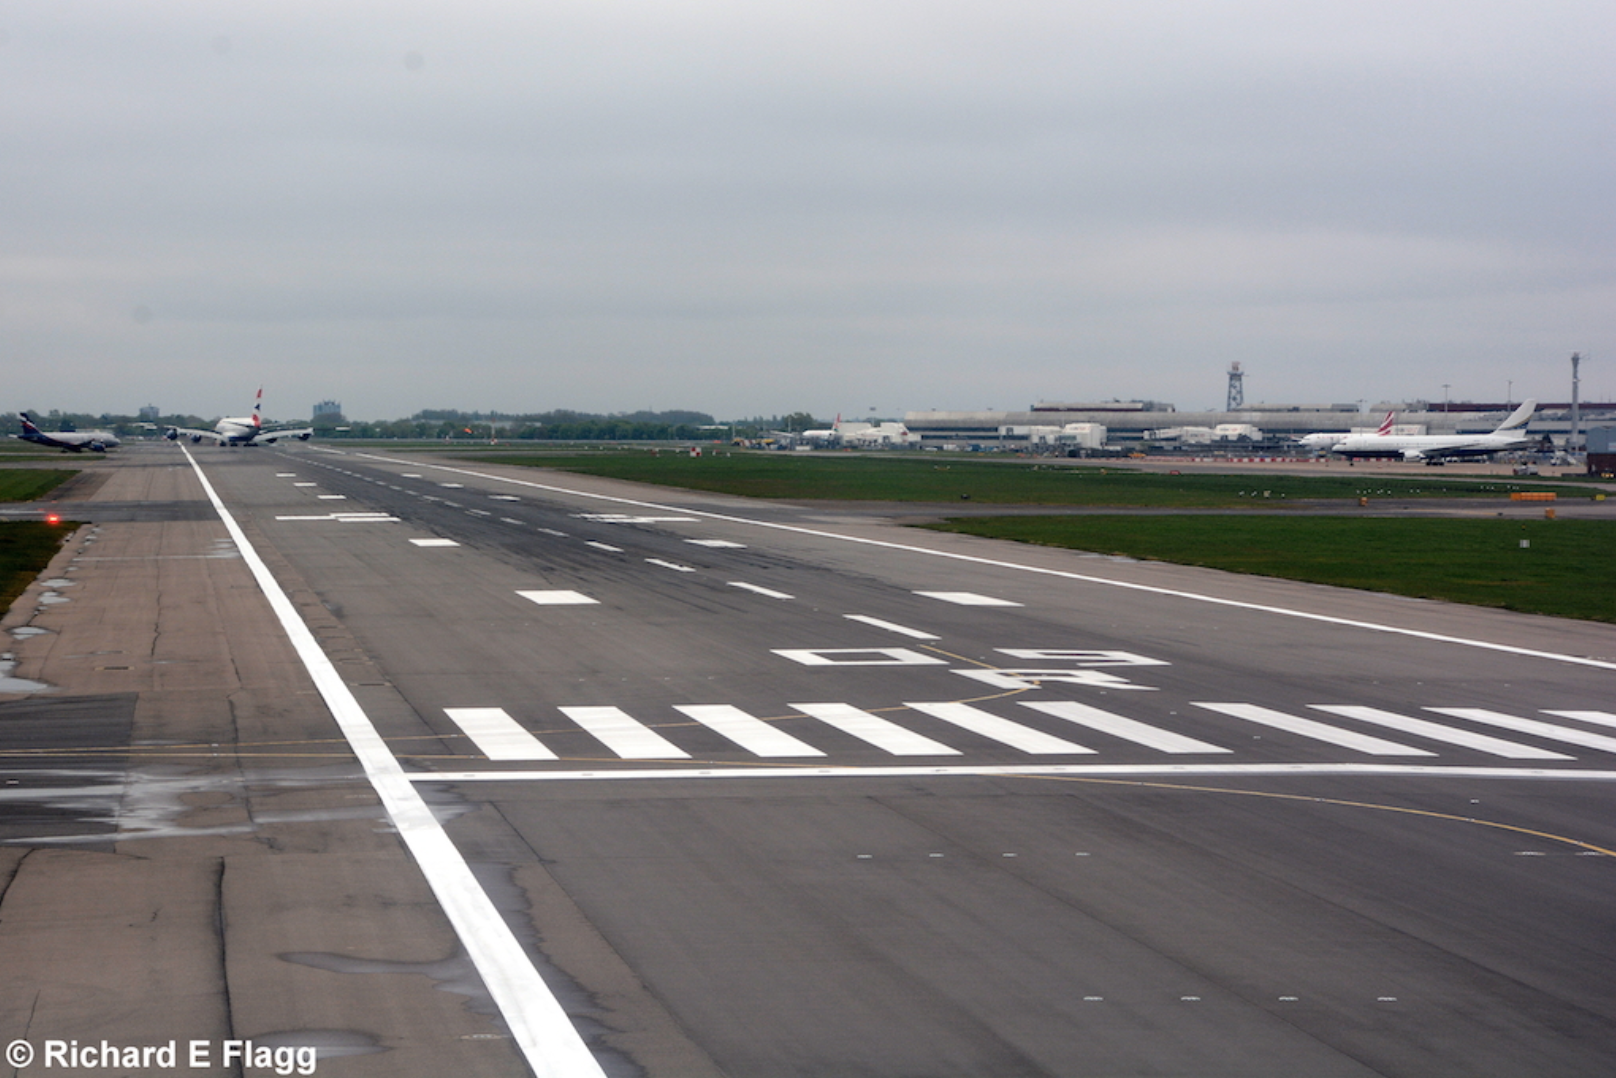 011Runway 09R:27L. Looking east from the runway 09R threshold - 26 April 2015.png